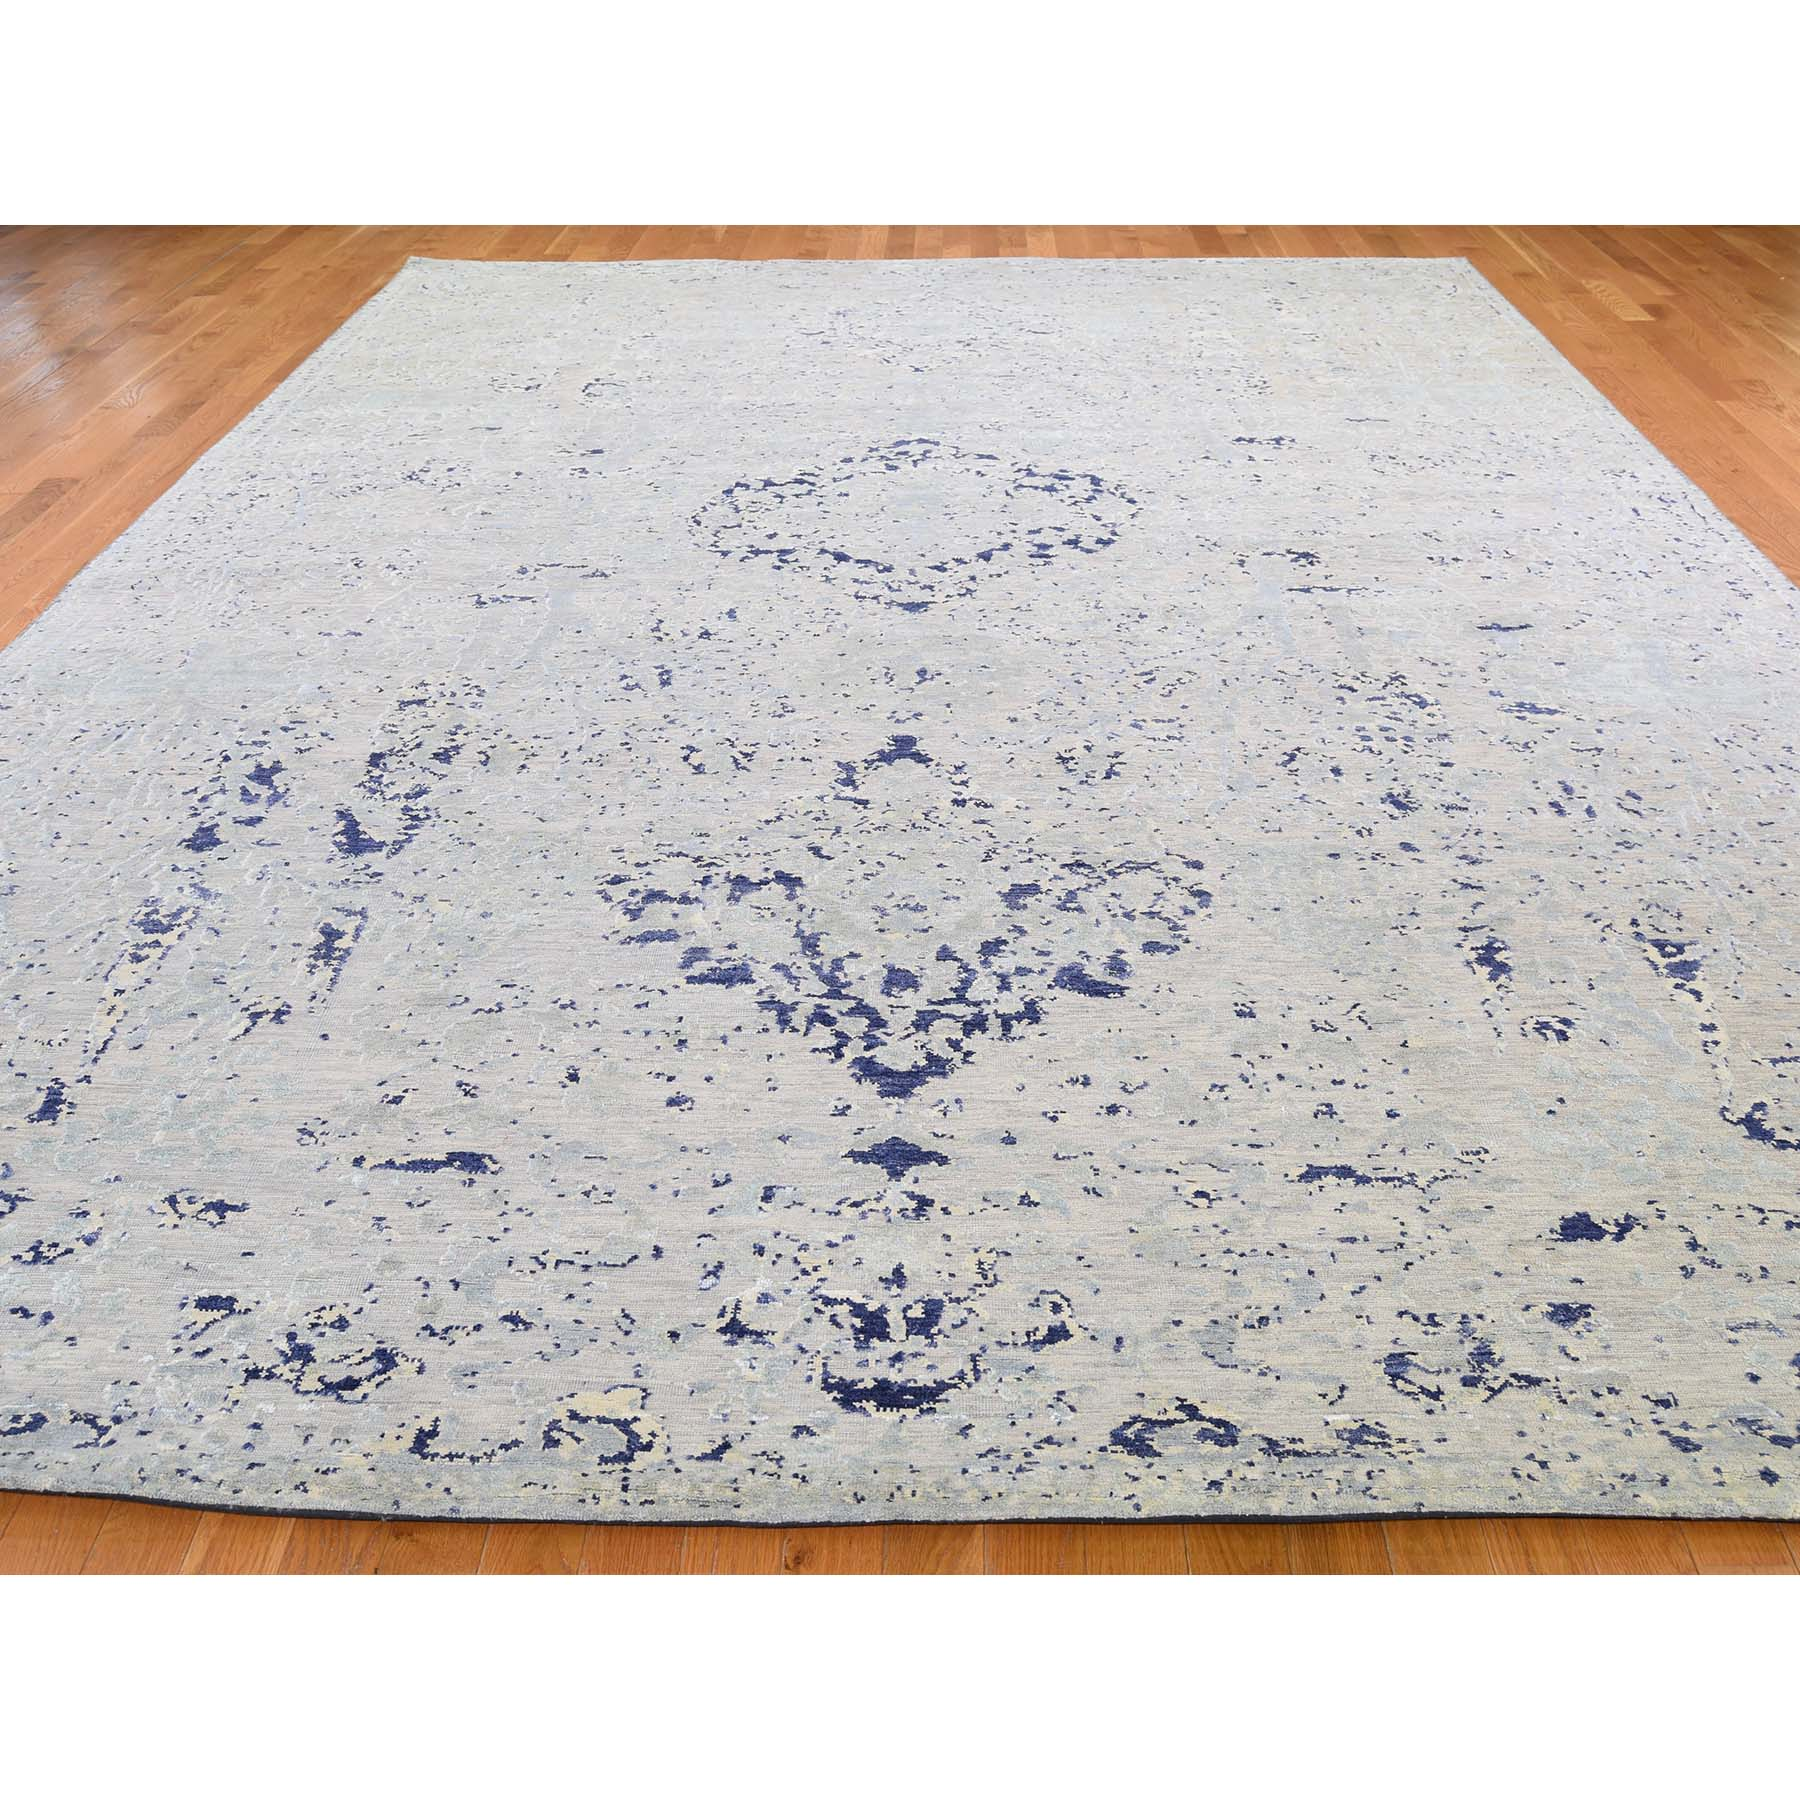 10-x14-1  Diminishing Cypress Tree With Medallion Design Silk With Oxidized Wool Hand-Knotted Oriental Rug